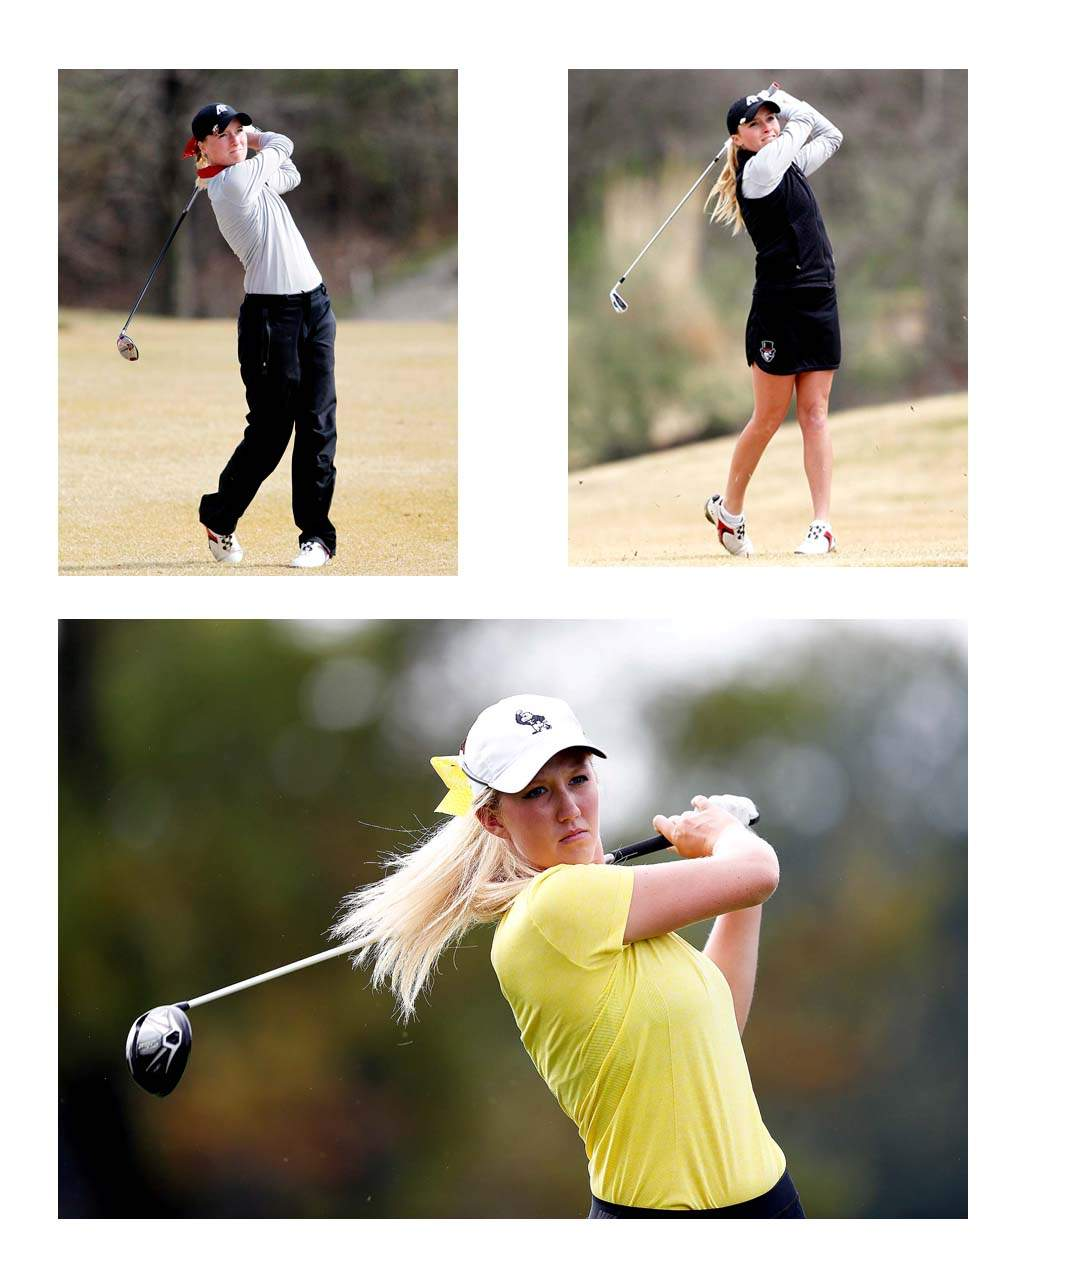 Eldorado graduates and seniors-to-be at Austin Peay State University Taylor (left) and Ashton Goodley were both named Women's Golf Coaches Association (WGCA) All-American Scholars. Both Goodleys make their third consecutive appearance on the list. (Bottom) Shawn Rennegarbe maintained a cumulative GPA of 3.50 or higher at Iowa. On the women's golf team, Rennegarbe competed in all 10 tournaments for the Hawkeyes last season. She carded a career-best finish at the Hawkeye El-Tigre Invitational (March 16-17), tying for 20th with a three-round total of 225 (+9).